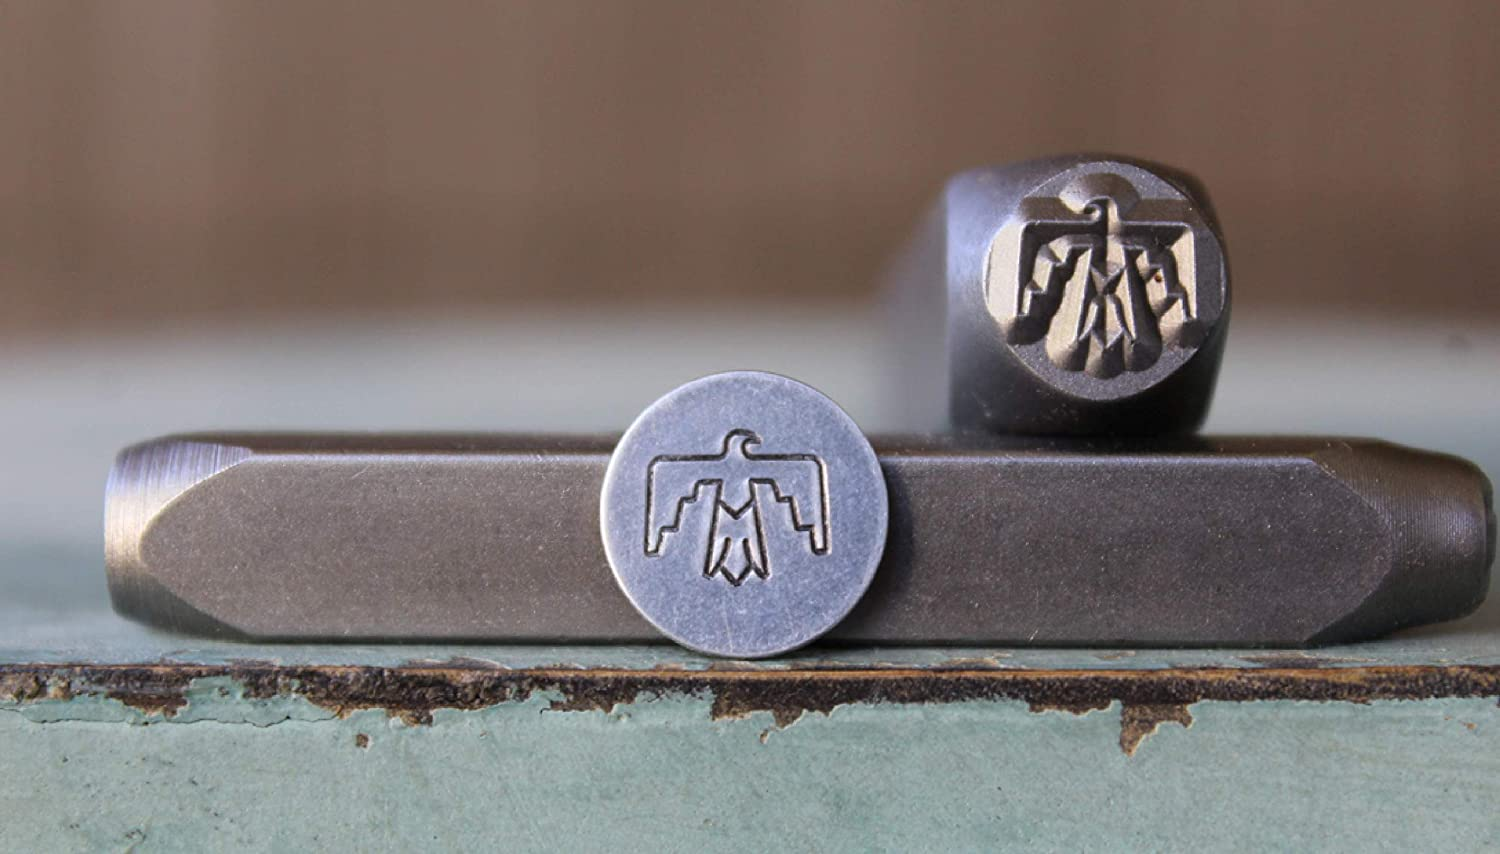 Southwestern stamps Indian THUNDERBIRD Metal Stamp metal stamps metal stamping tools ImpressArt Native American protection symbol